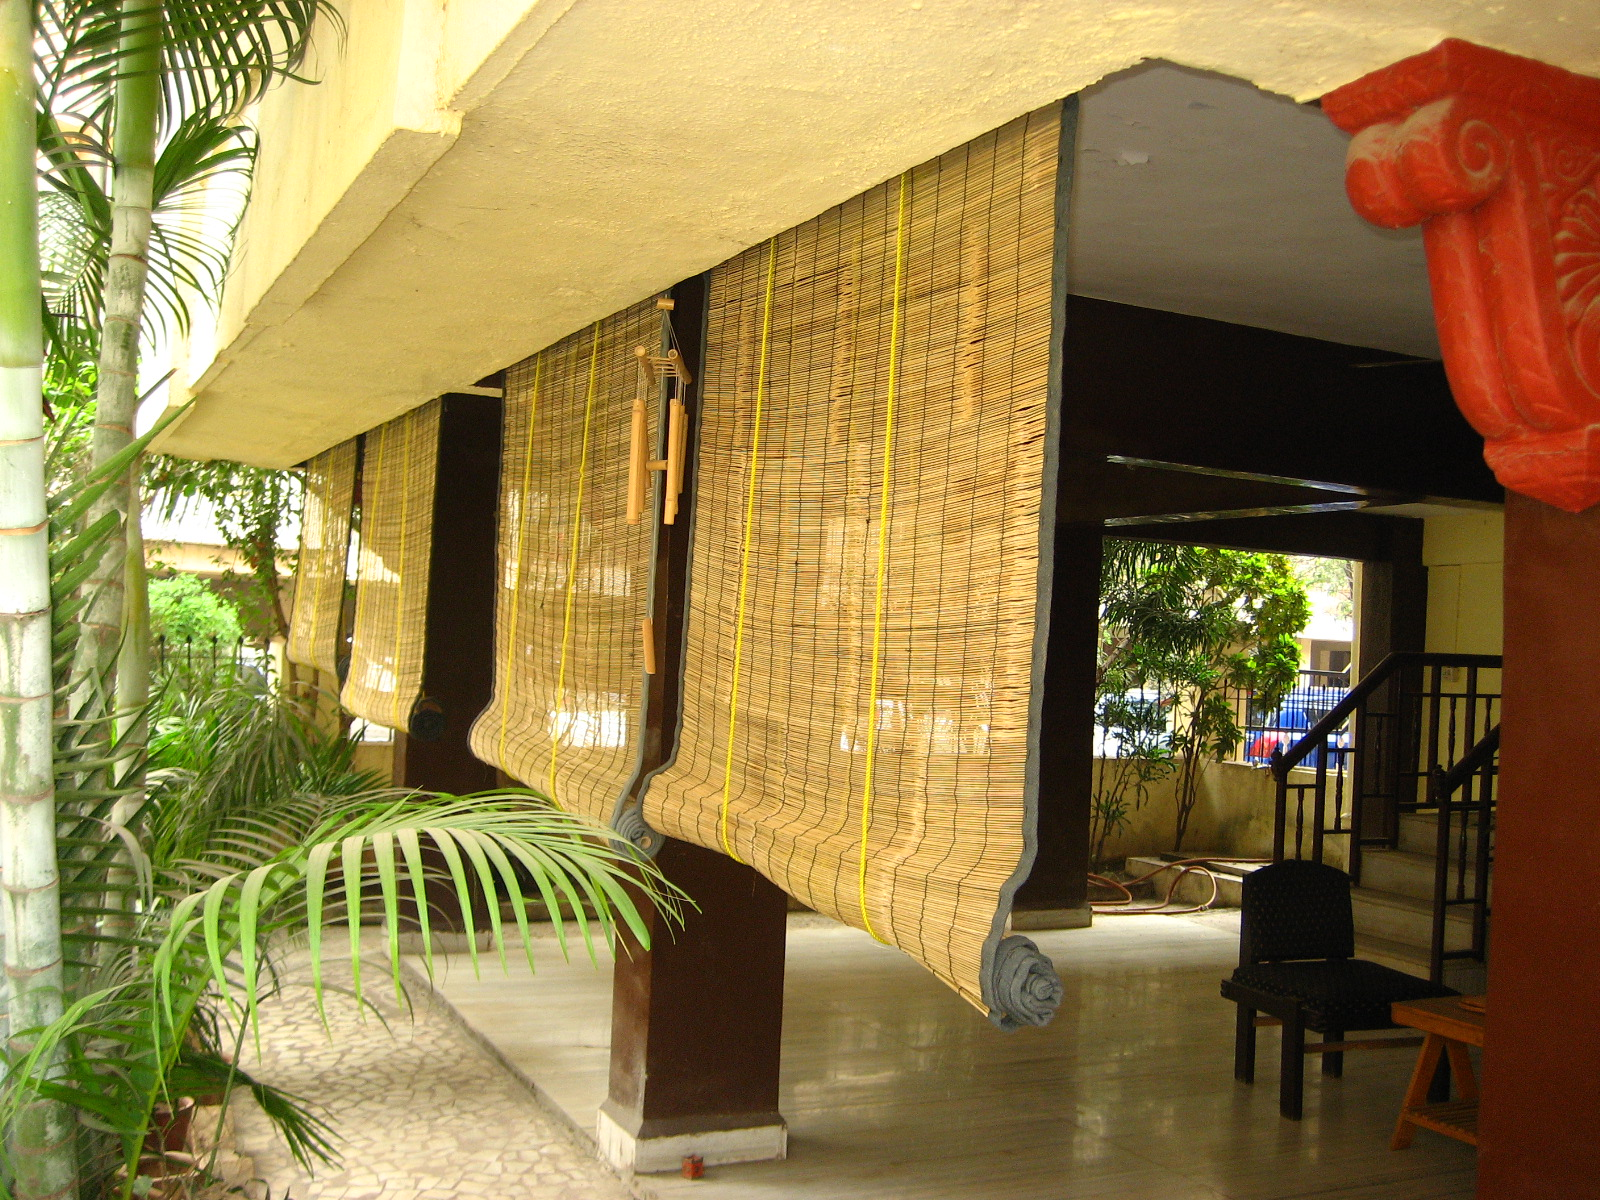 Bamboo Curtains For Doors Orange Curtains for Outdoors